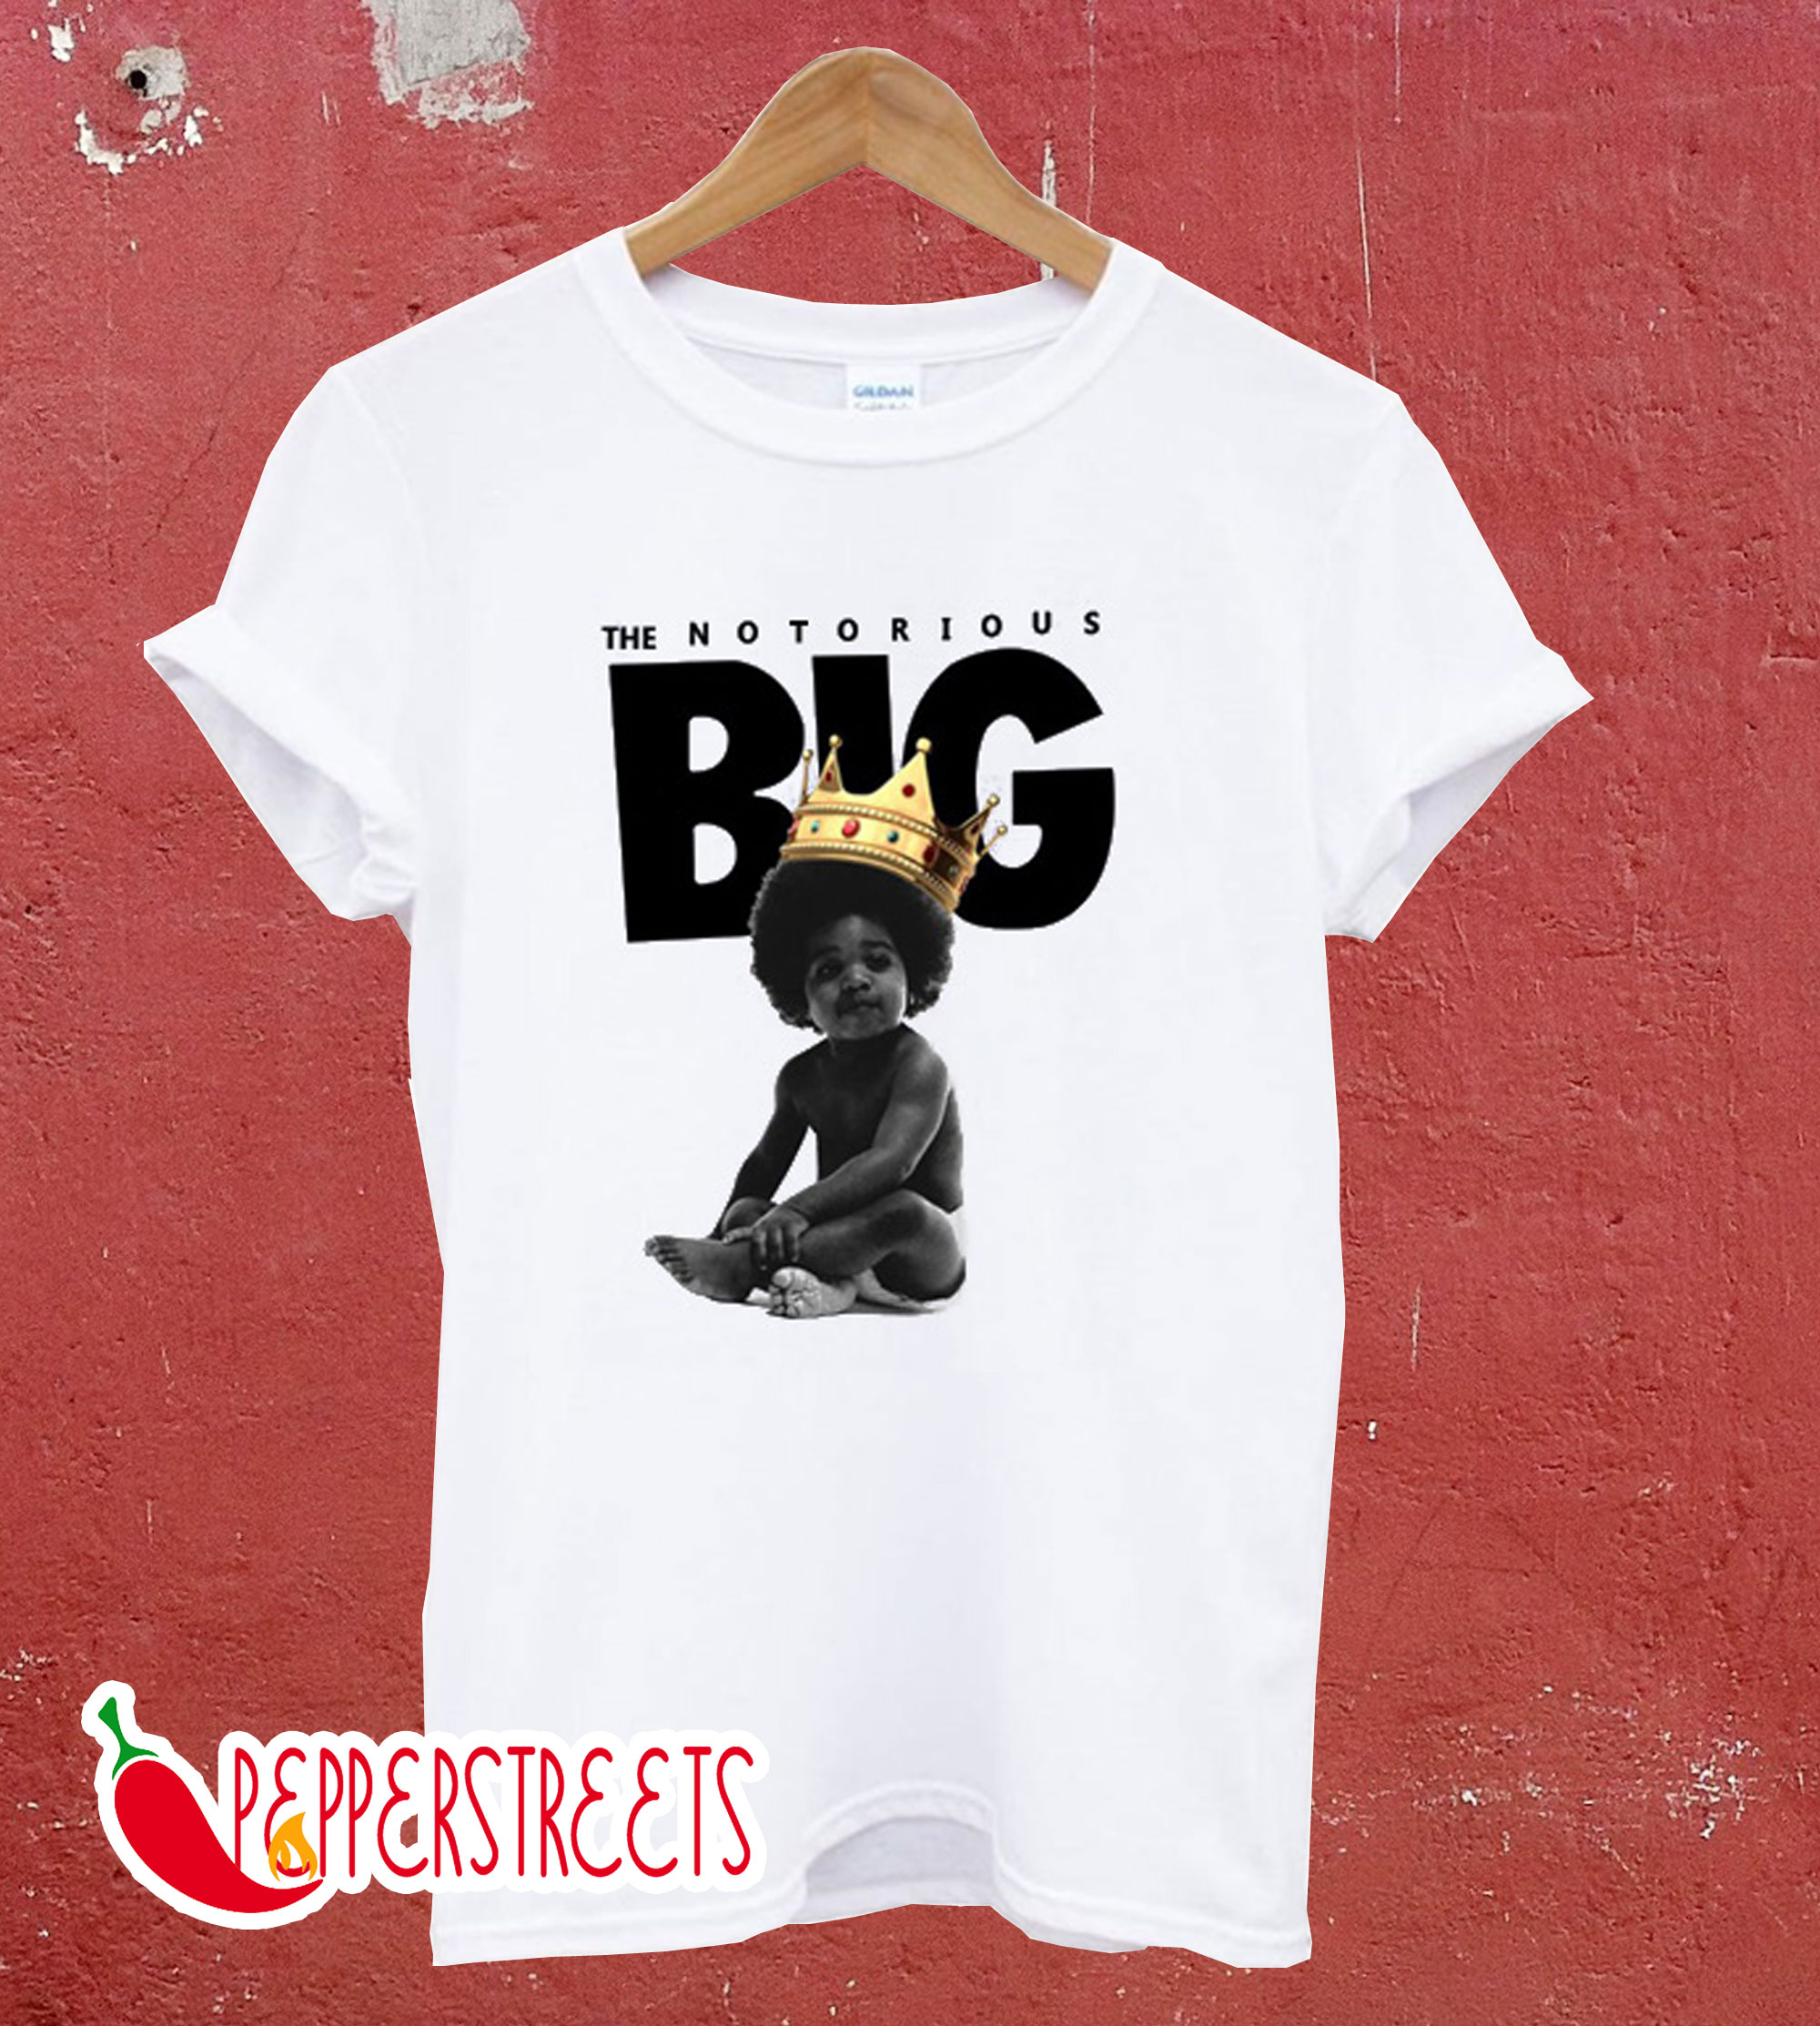 The Notorious Big Baby T-Shirt